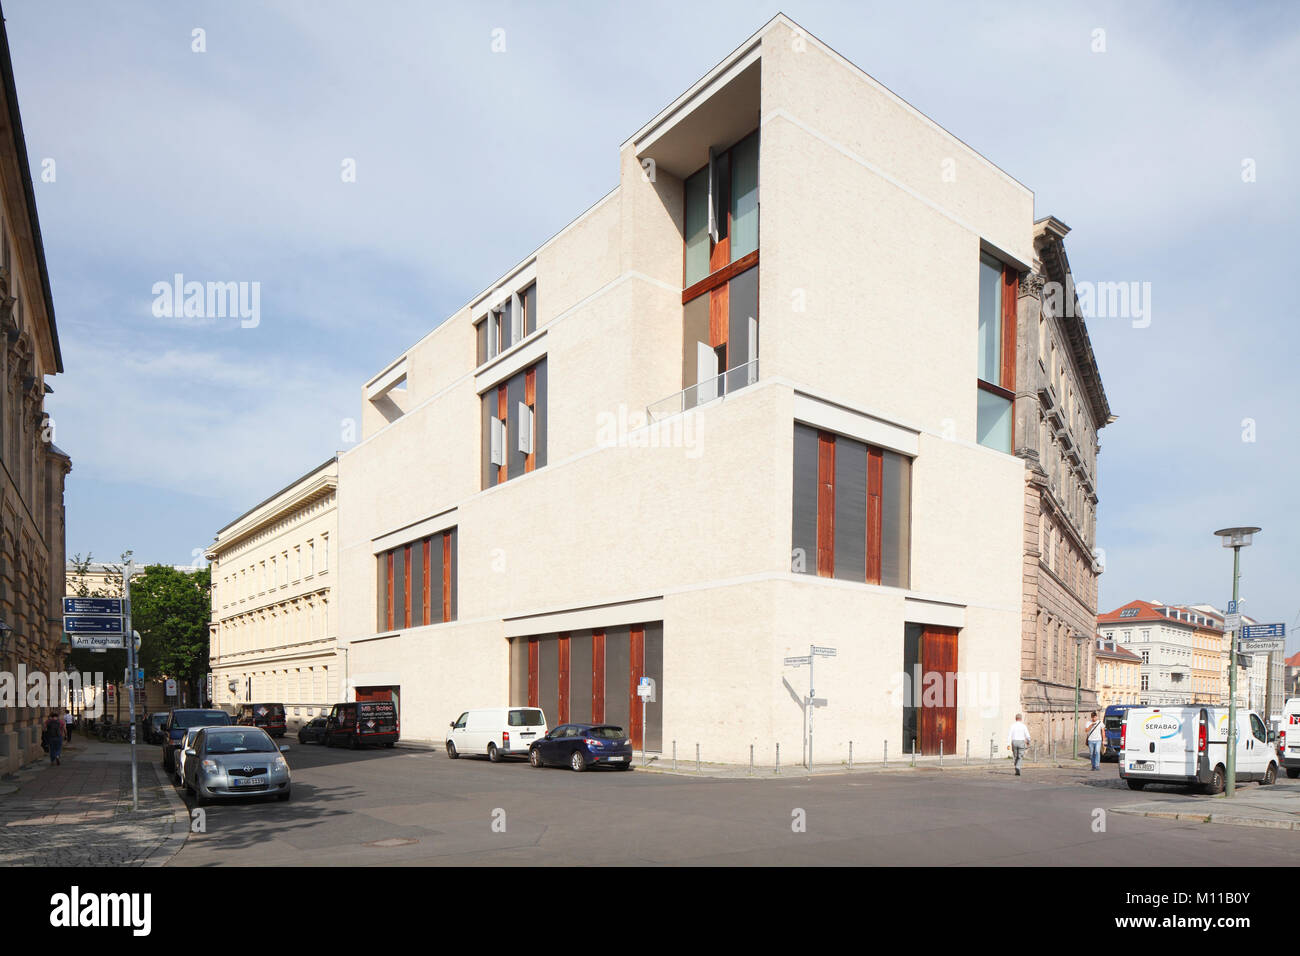 Modern Architecture at Kupfergraben Street, Berlin, Germany, Europe I Galerie am Kupfergraben, Architekt David Chipperfield - Stock Image